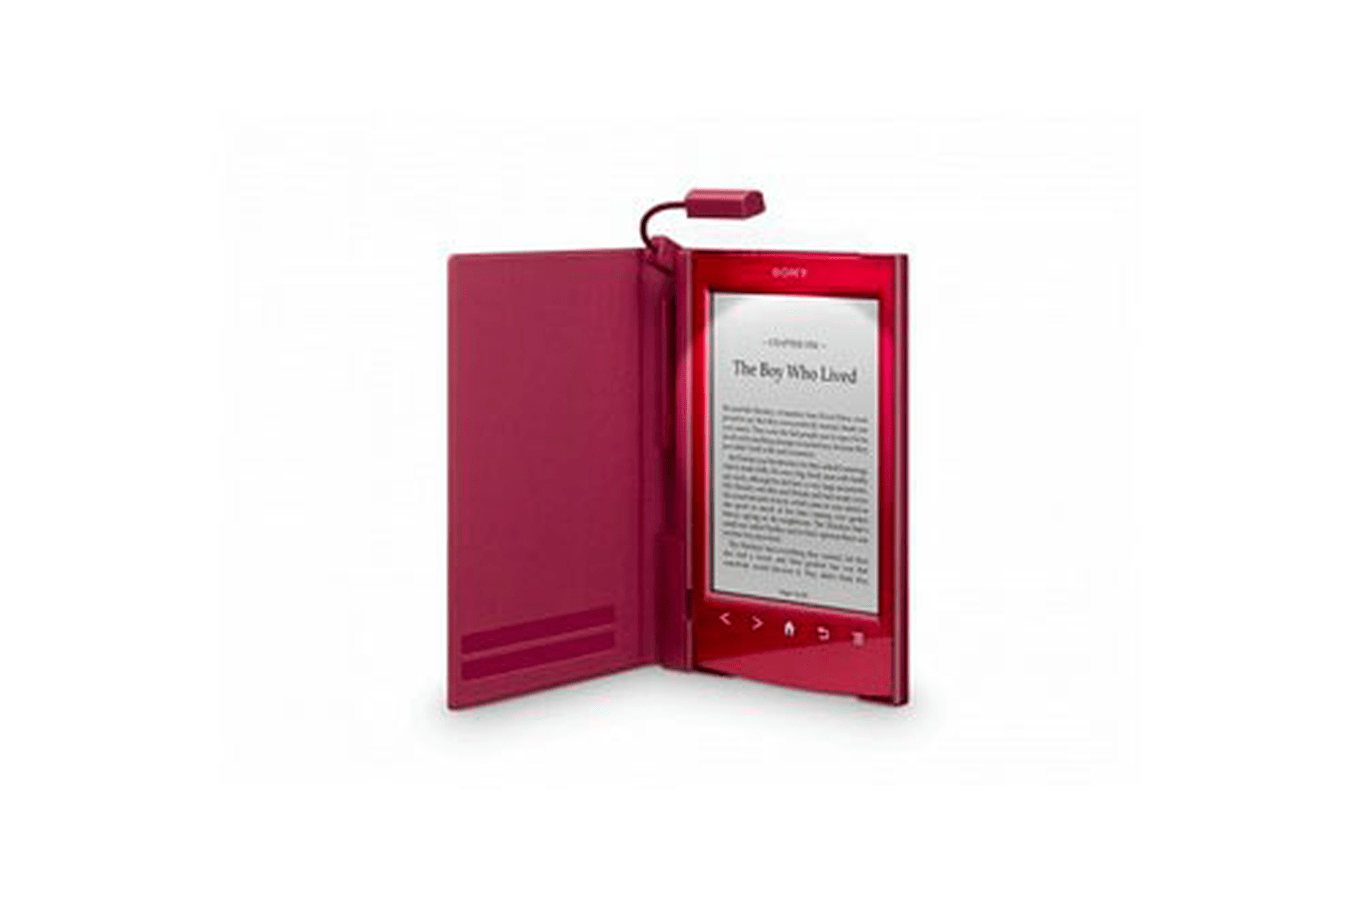 Libro Electronico Sony Prs T1 Pack Liseuse Ebook Sony Prs T2 Rouge 43 Housse Rouge